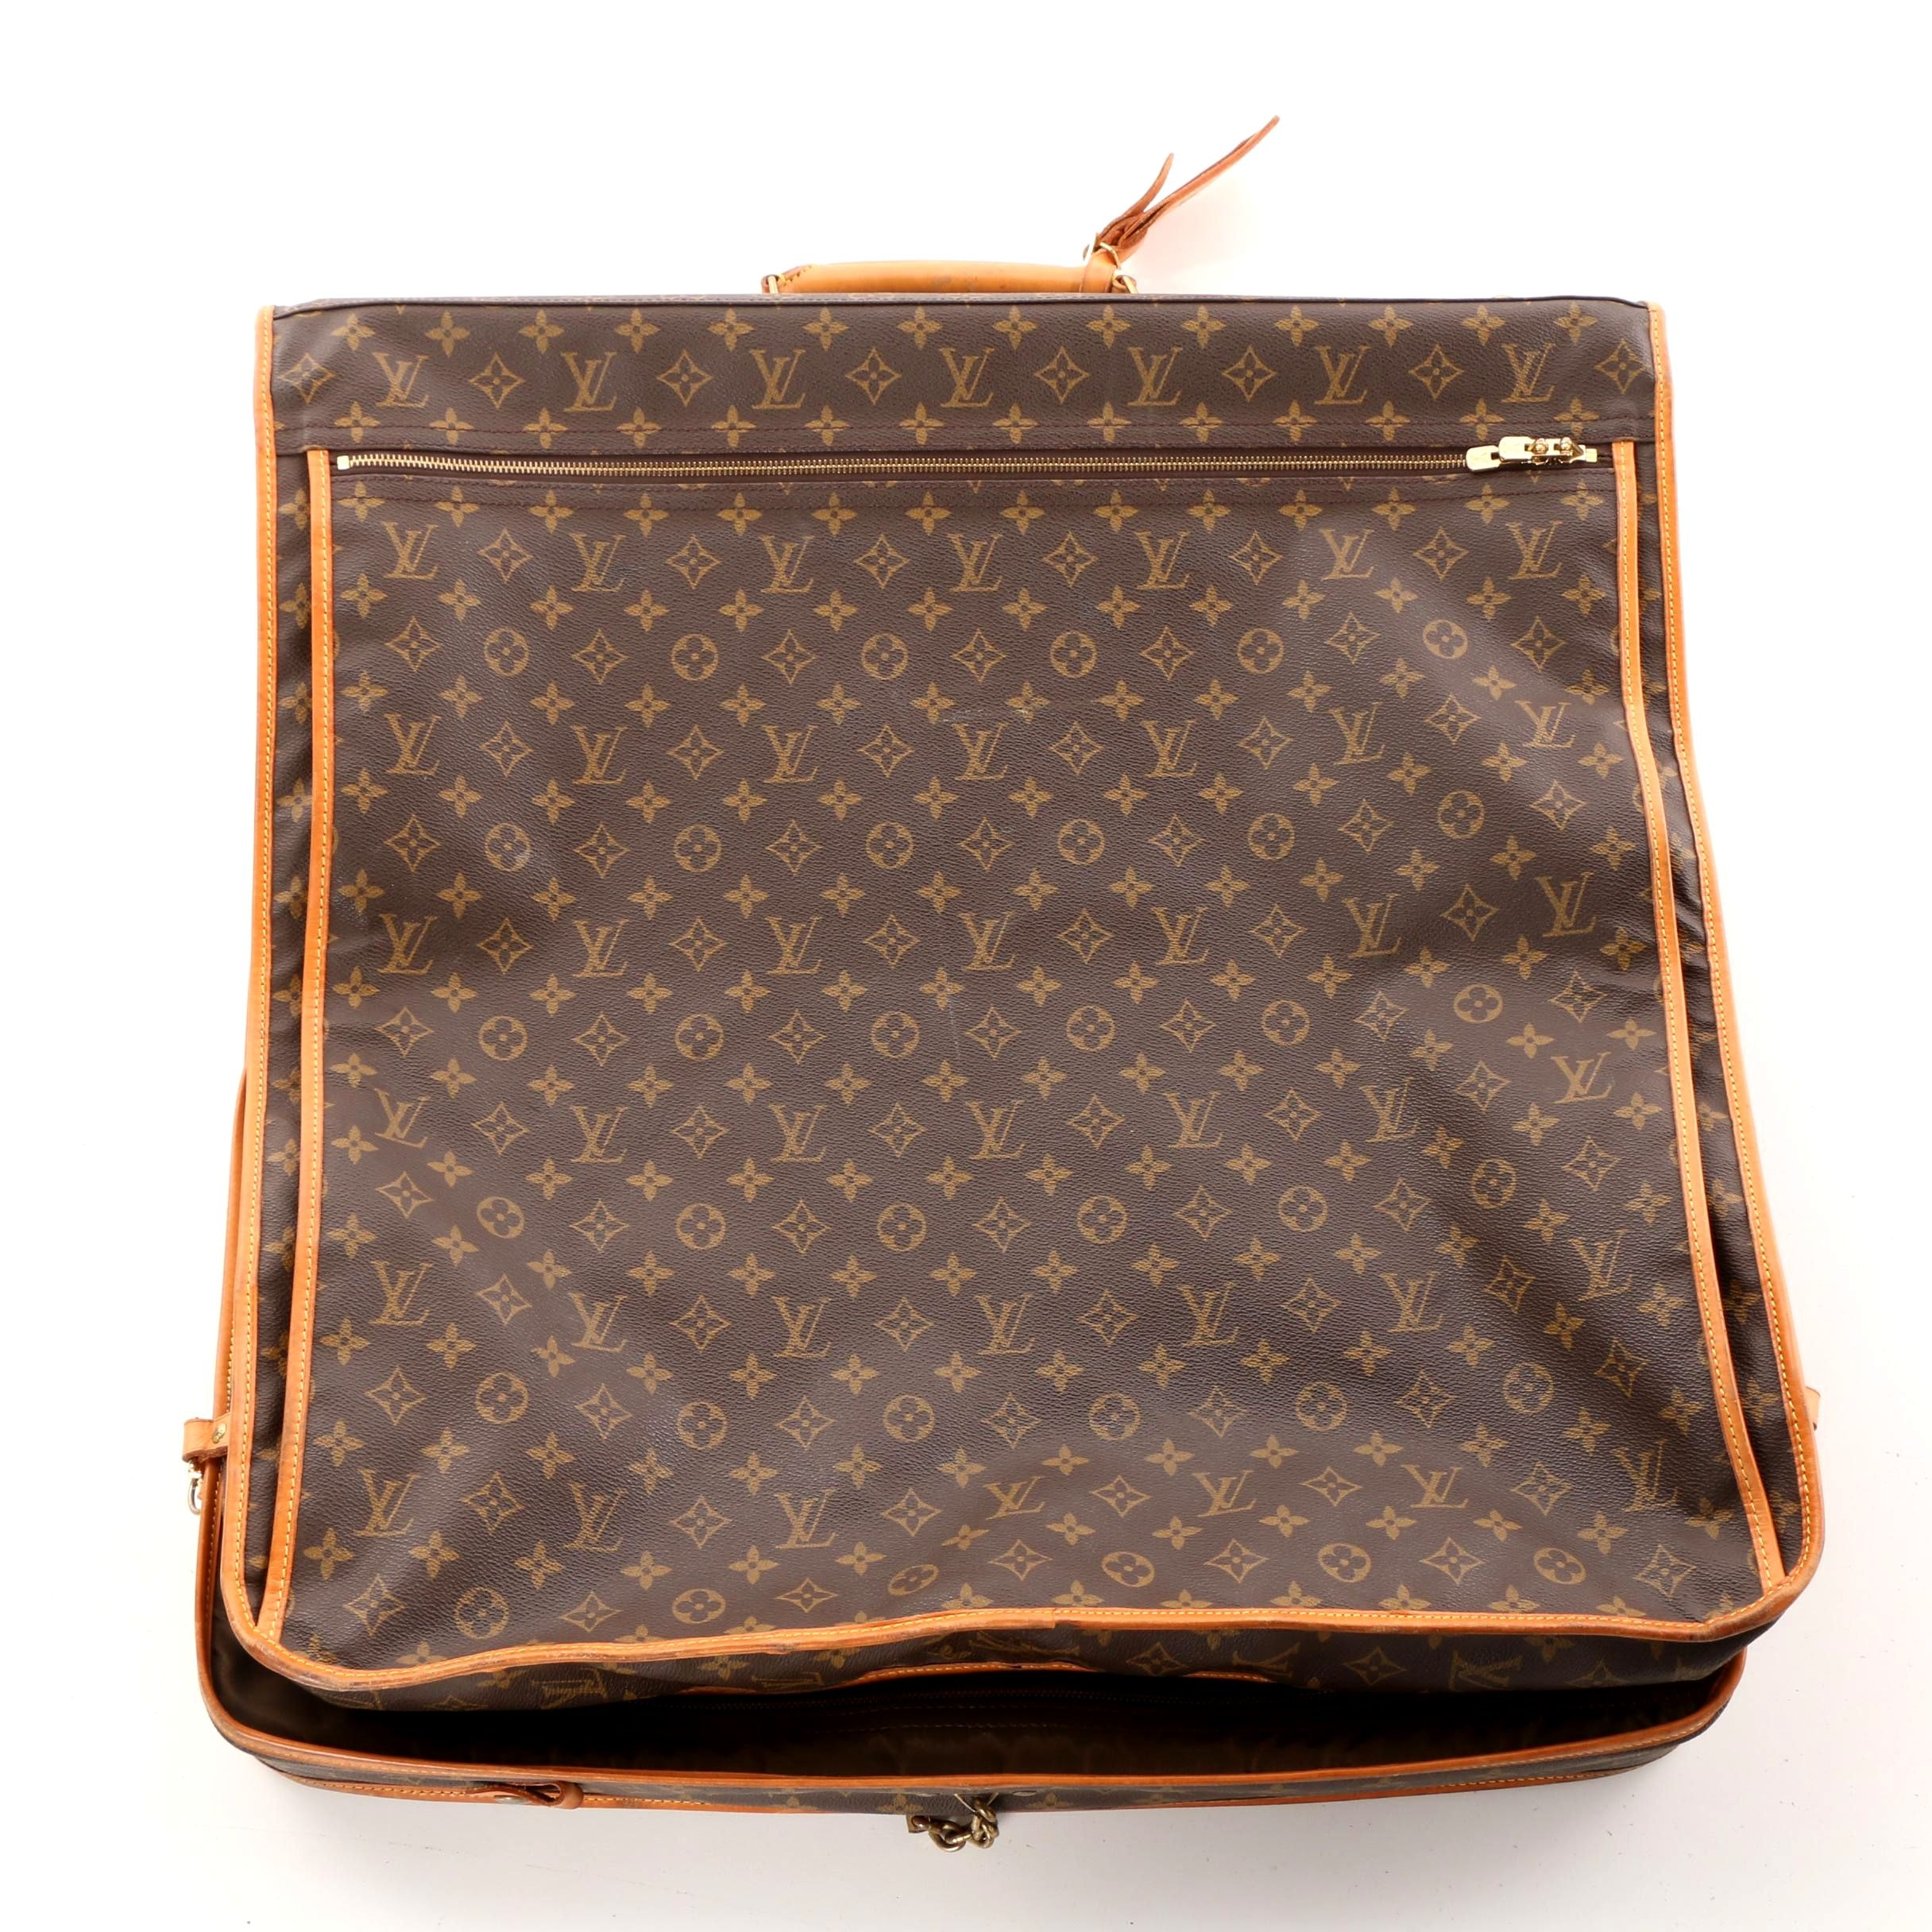 1991 Louis Vuitton Paris Malletier Monogram Canvas Garment Bag